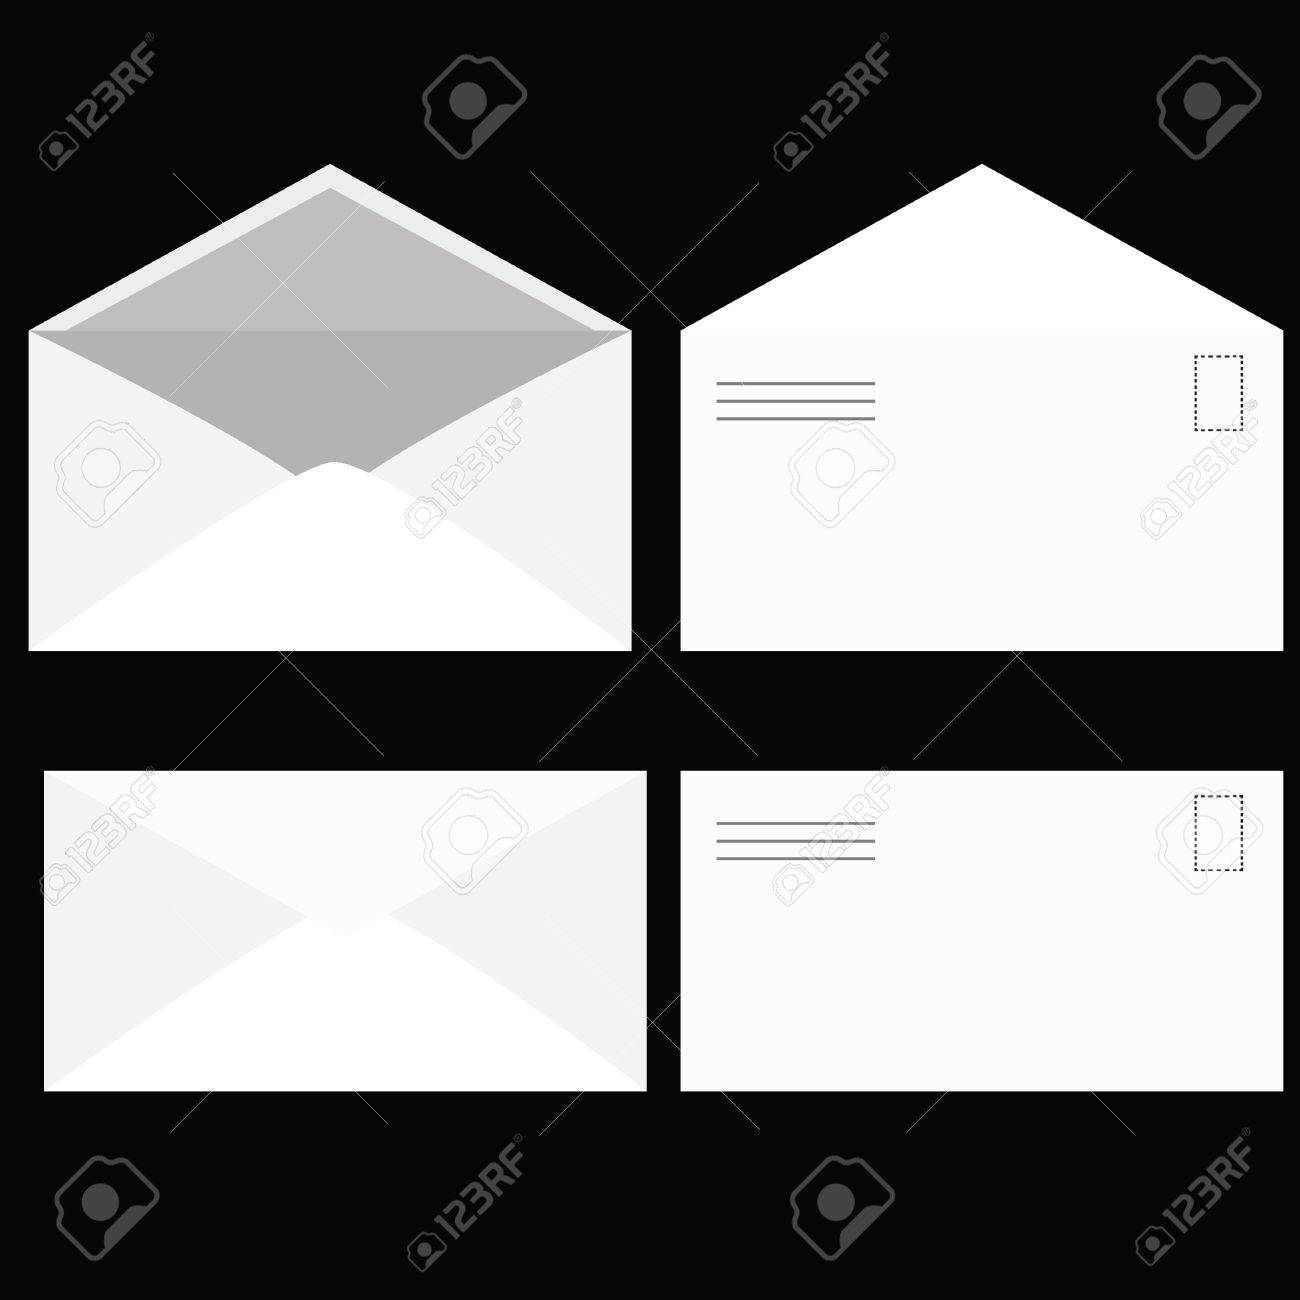 Illustration of an envelope, seen open and closed, from its front and back. Stock Vector - 4573175